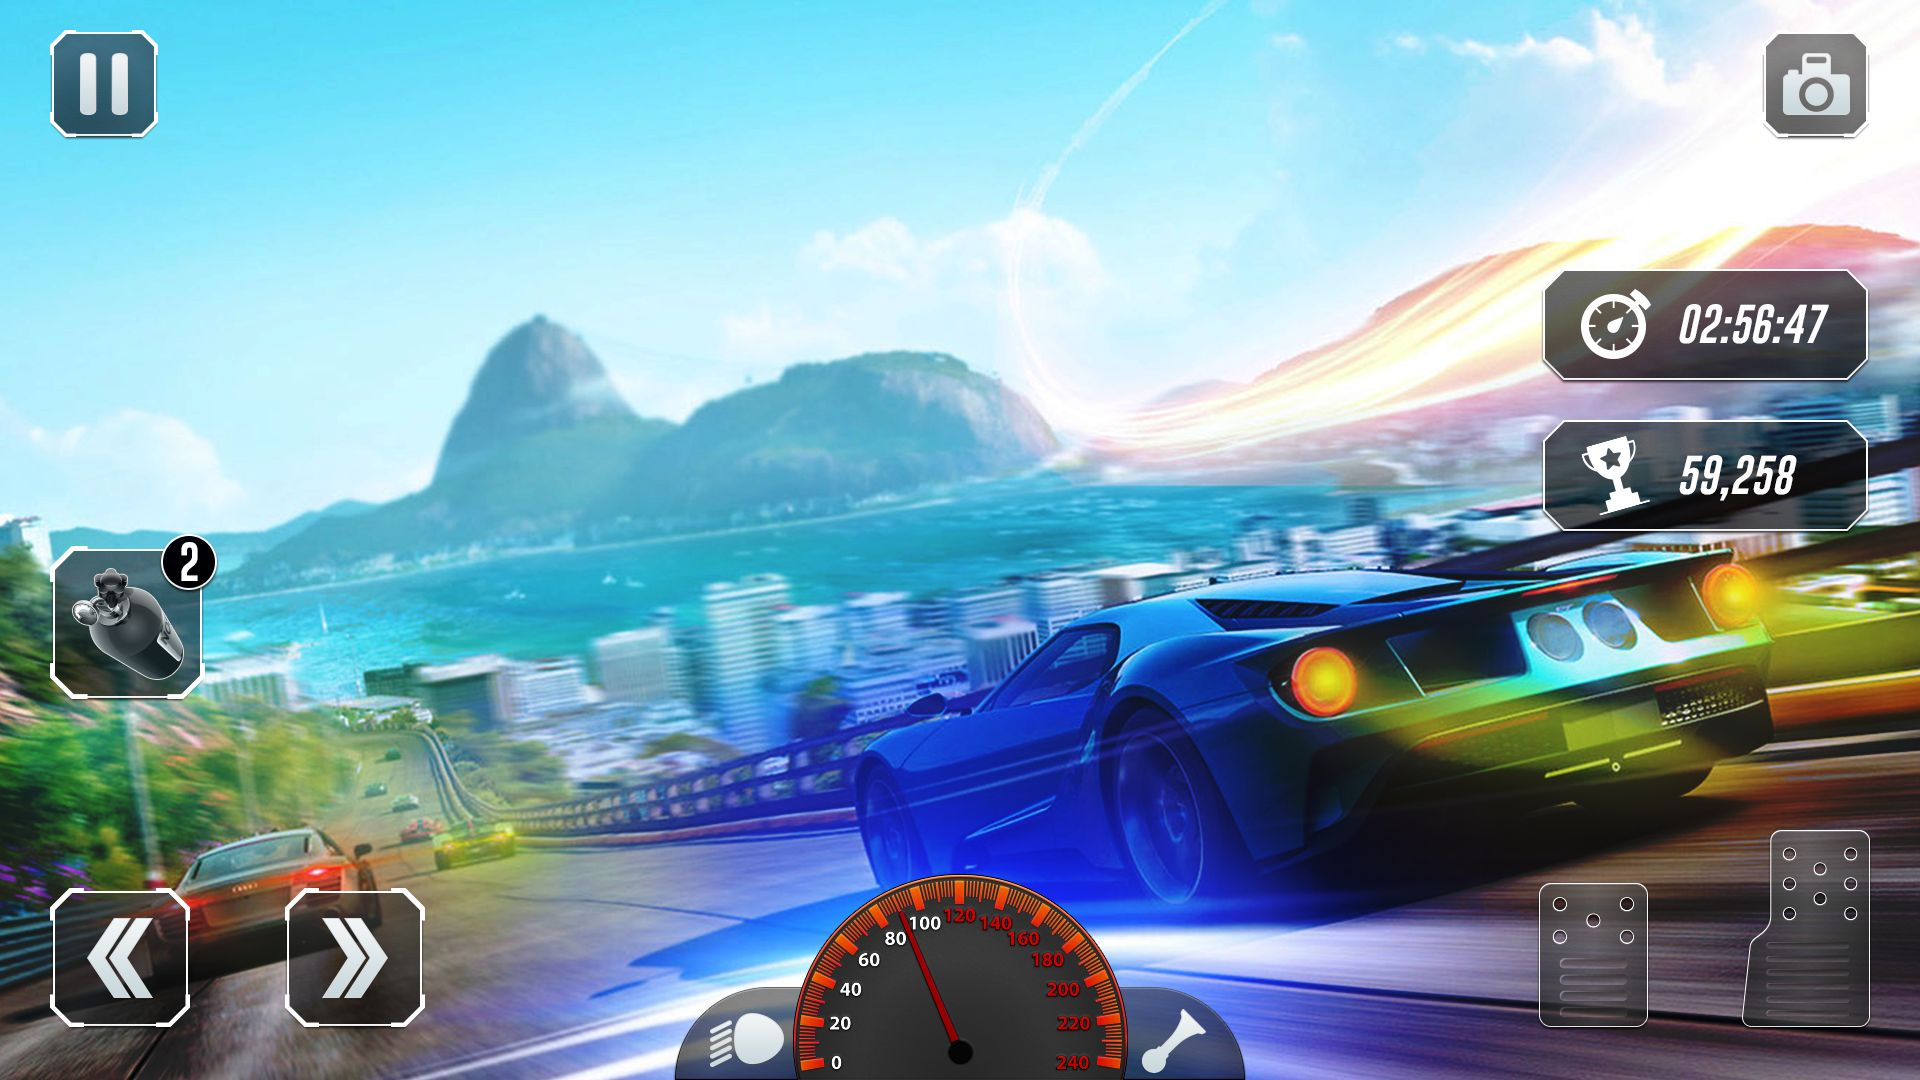 Racing Game Graphics CxS - GUI Skin 6 Screenshot 16